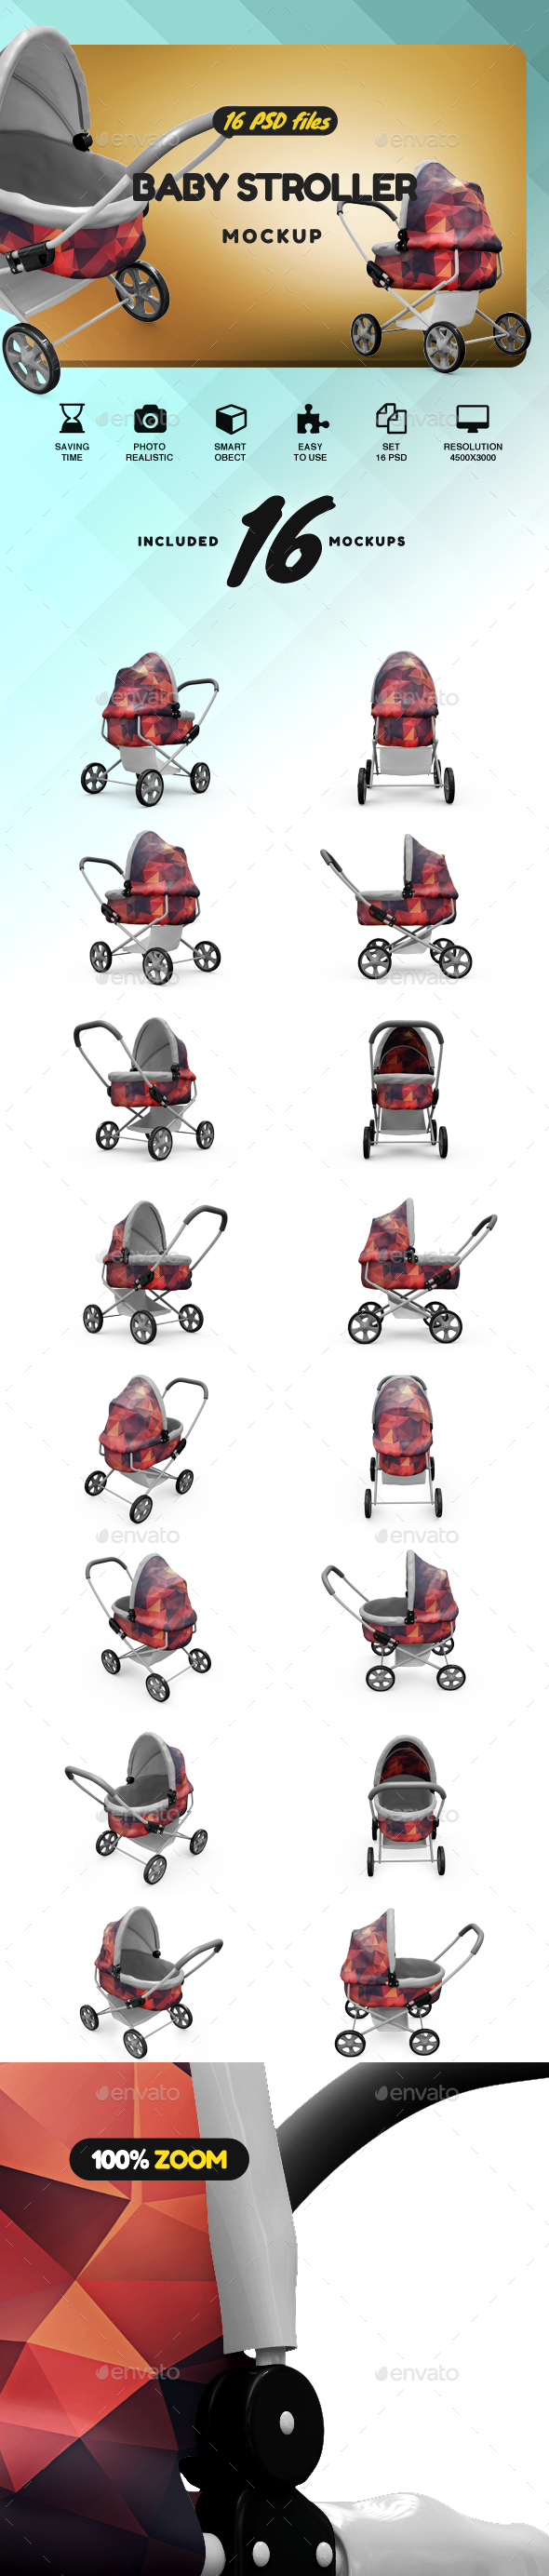 Baby Stroller MockUp - Product Mock-Ups Graphics